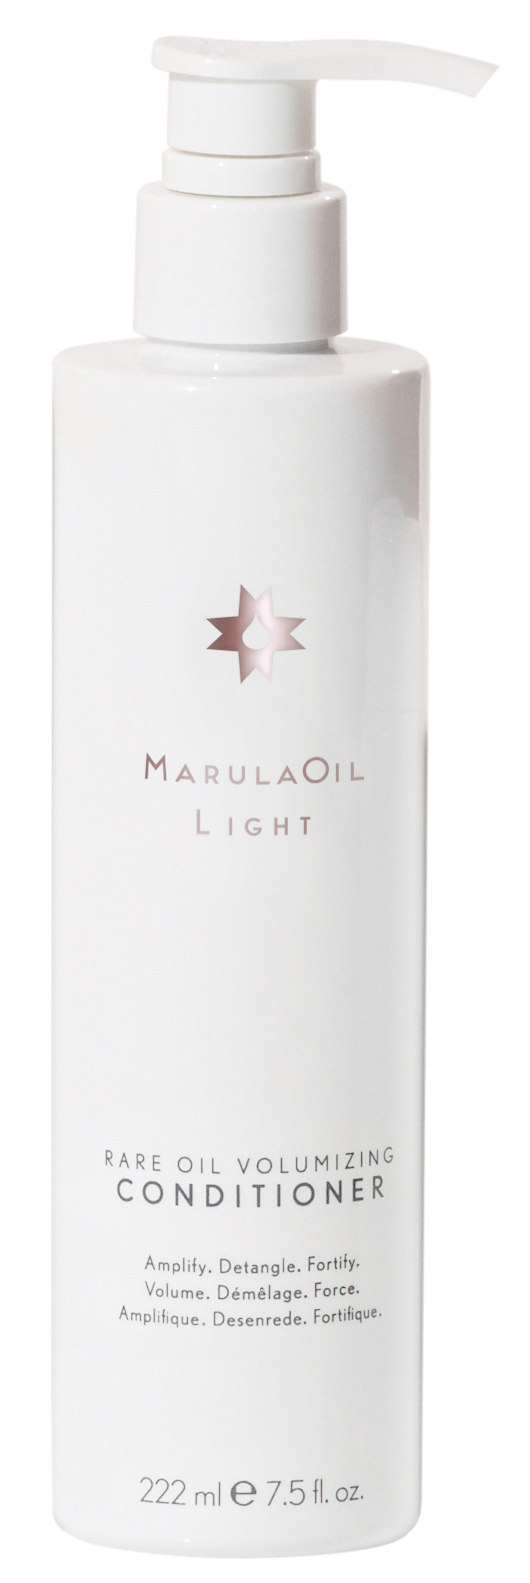 Marula Light RareOil Volumizing Conditioner